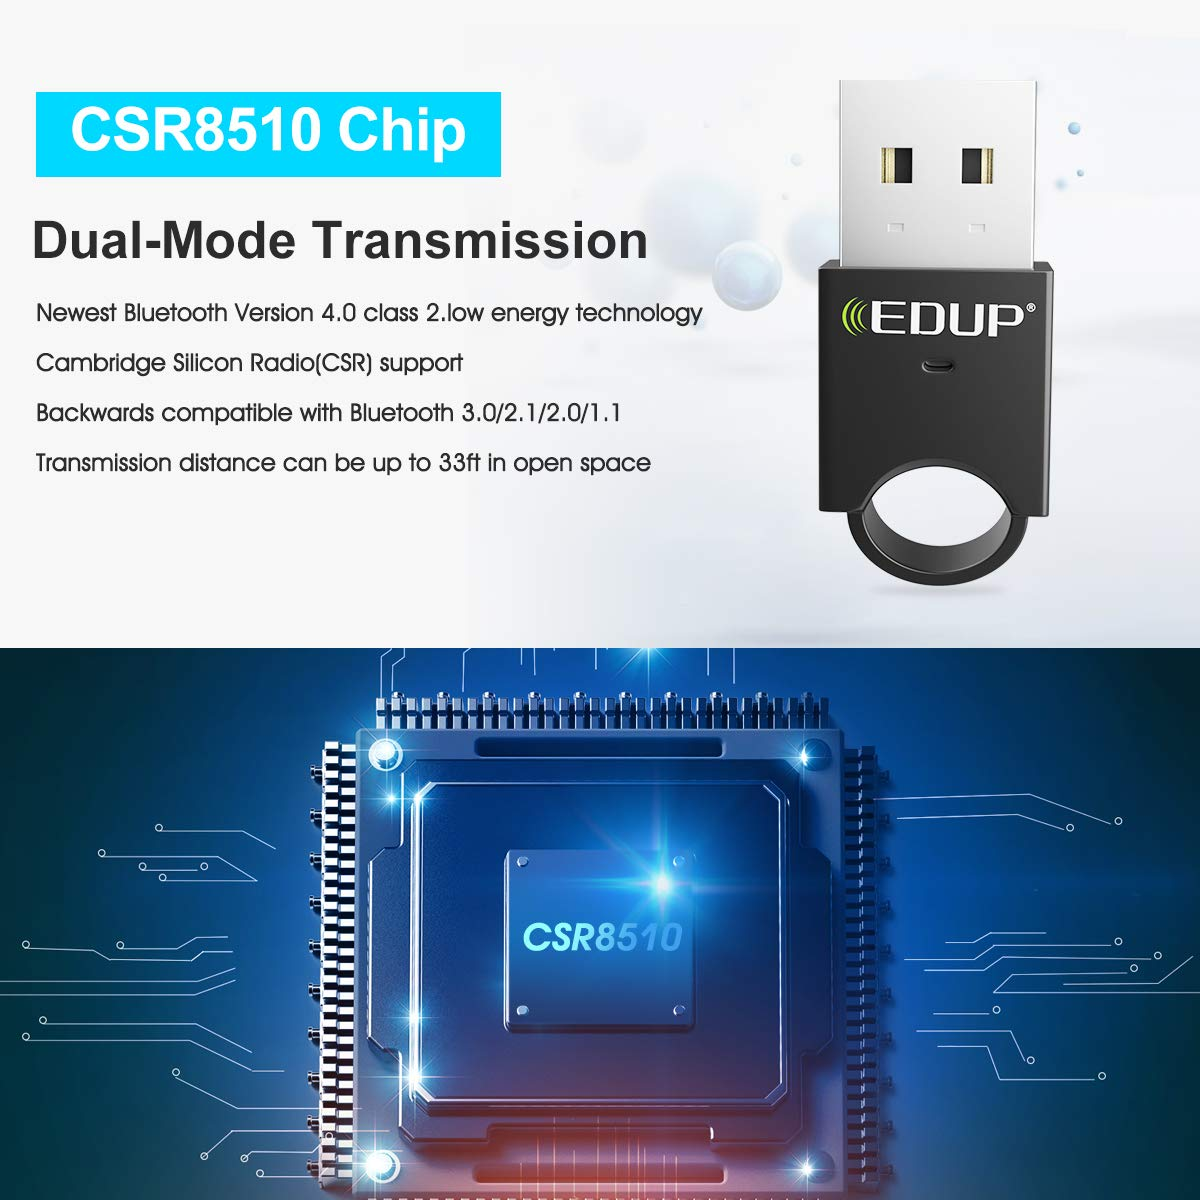 EDUP Bluetooth USB Adapter CSR 4.0 Bluetooth Dongle Receiver Wireless Transfer for Stereo Headset Music, Keyboards, Mouse, Gamepads, Speakers, Supports Windows 10/8.1/8/7/XP/Vista